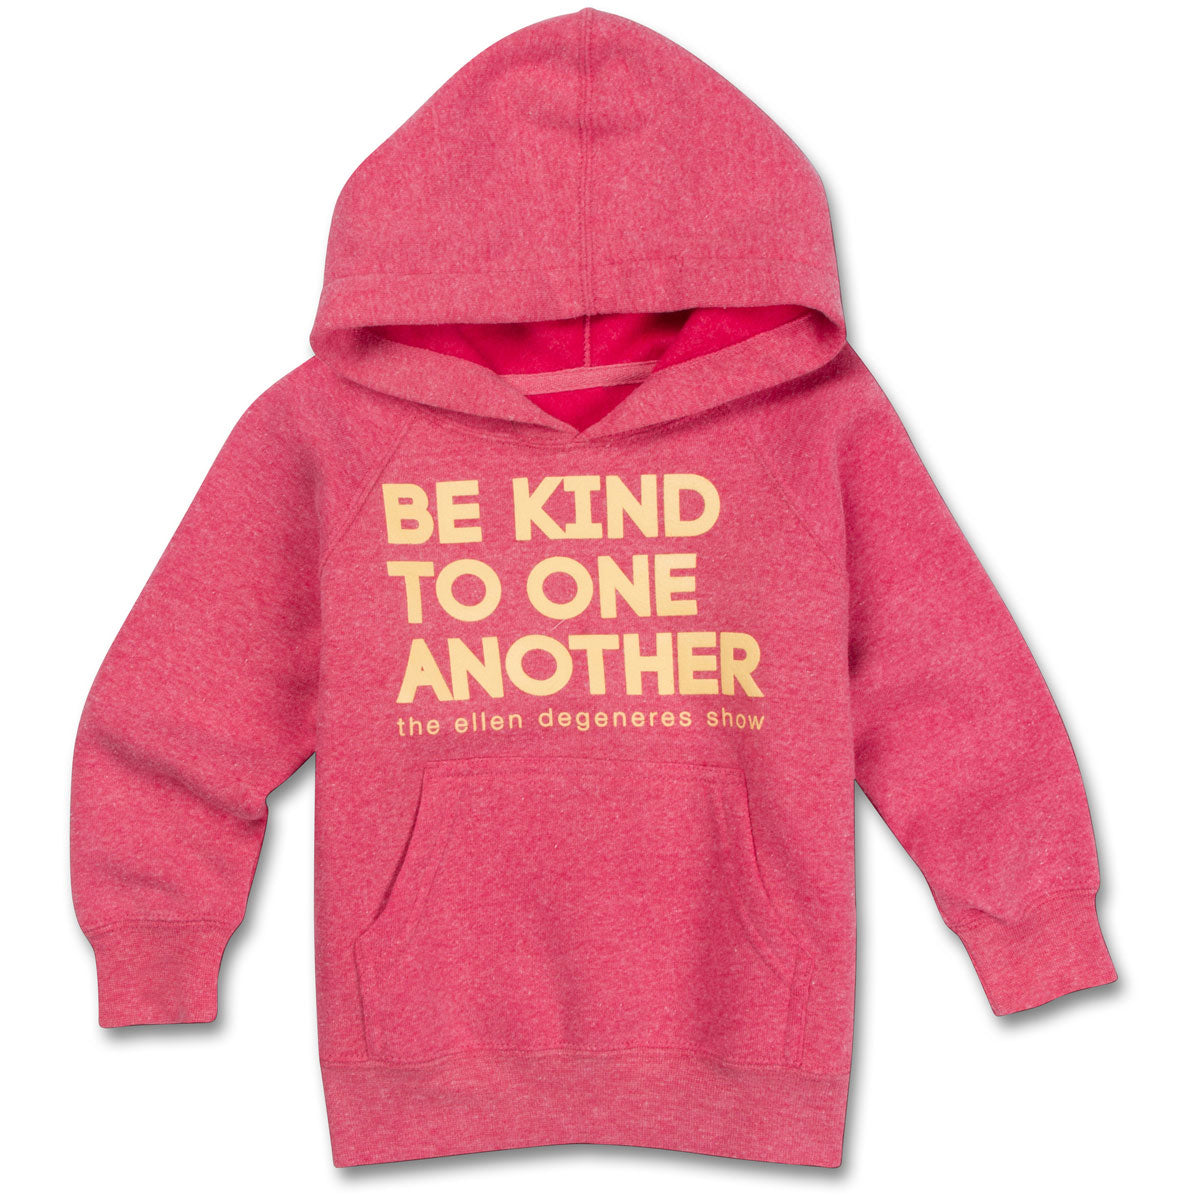 Be Kind Hoodie Kids - Red